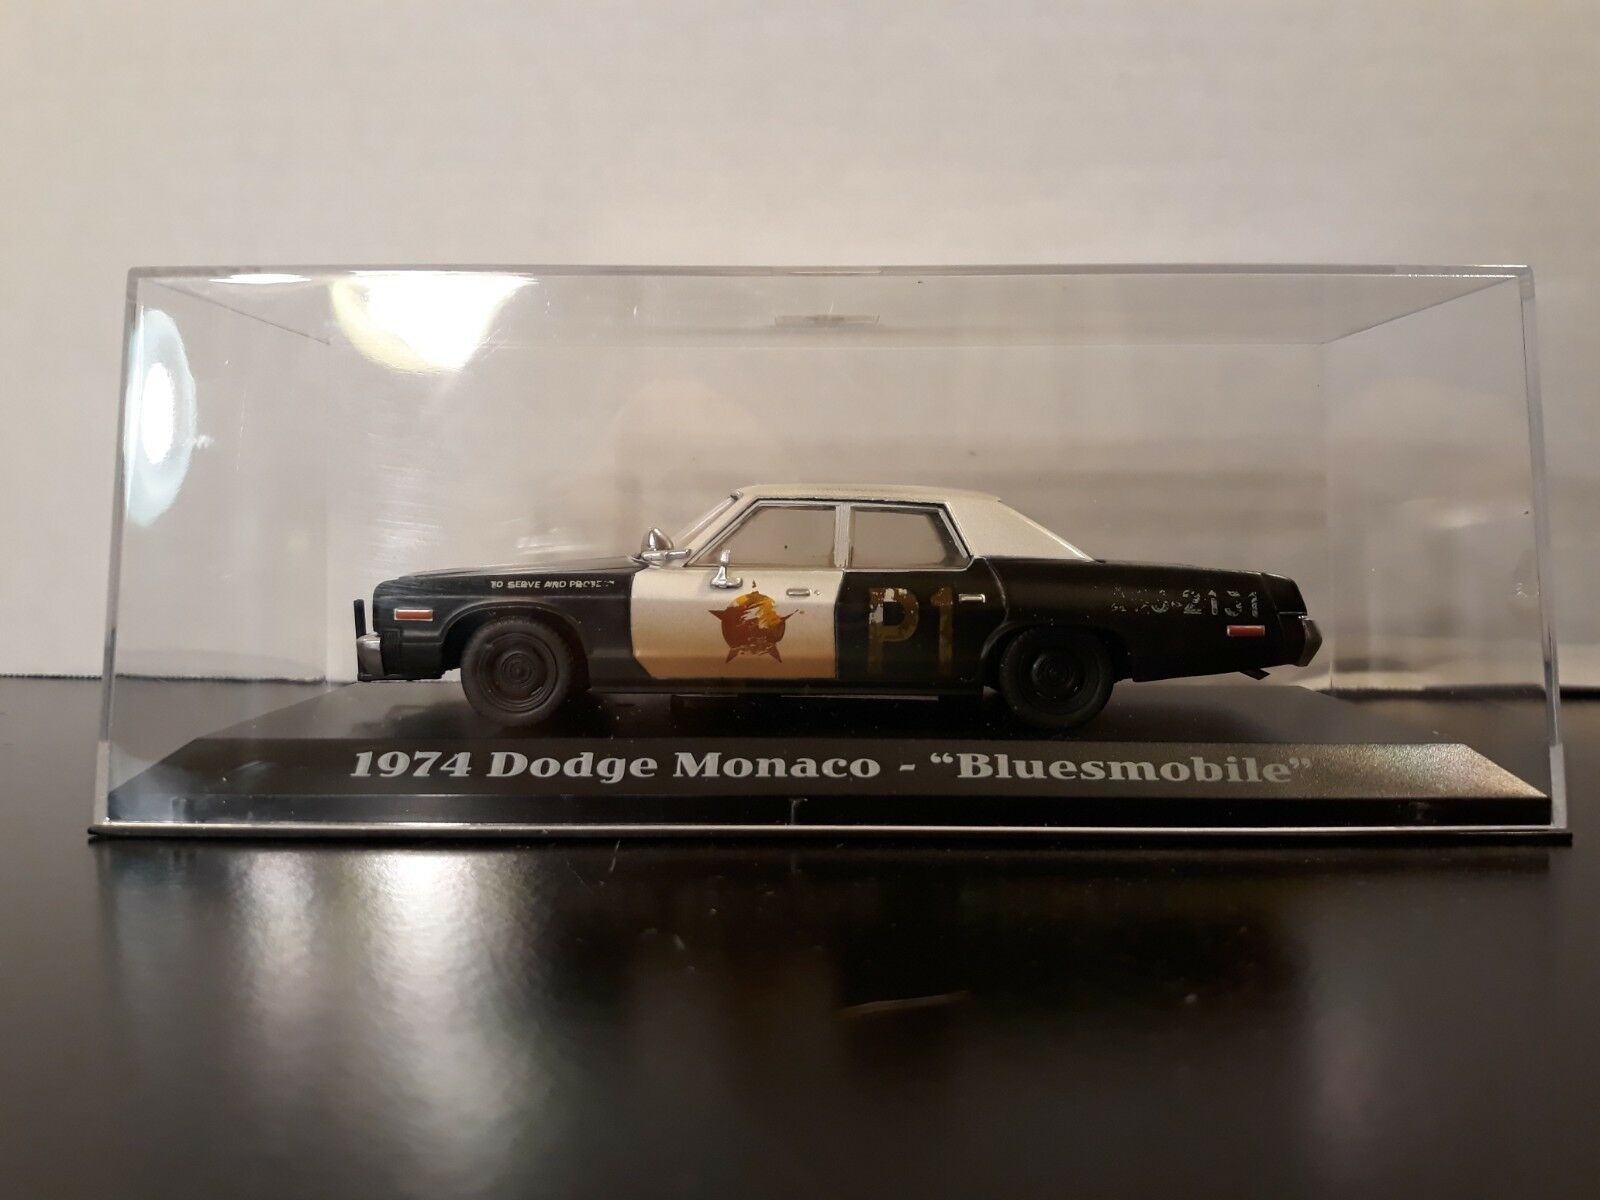 1974 - die Blaus brothers dodge monaco  Blausmobil  mit display - fall